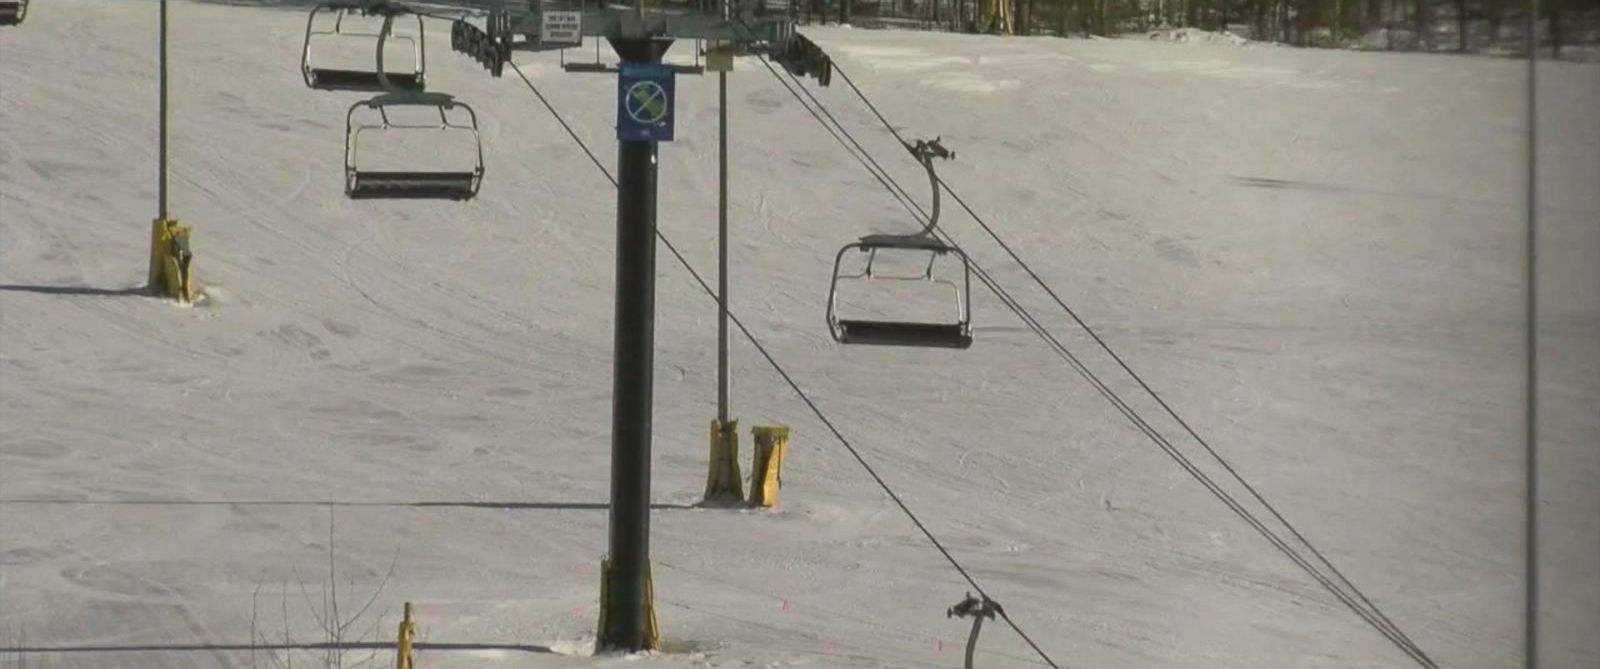 1 dead after fall from colorado chairlift police abc news for 2 story wheelchair lift